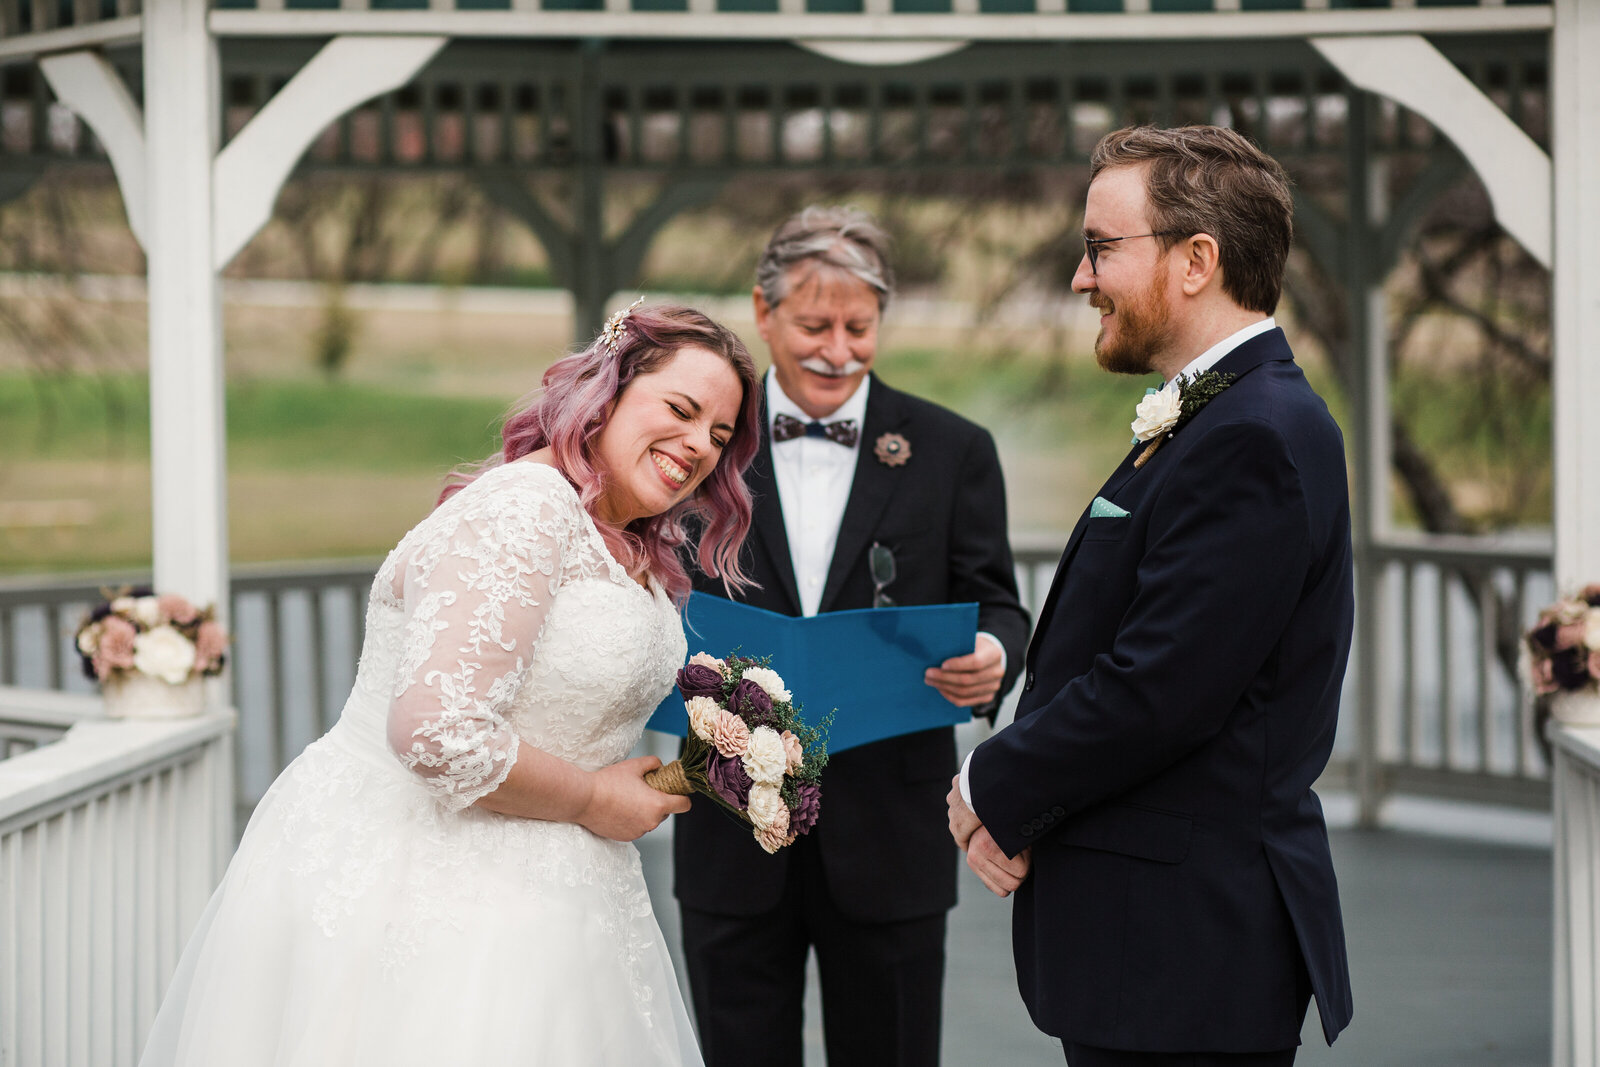 DFW Elopement Photographer